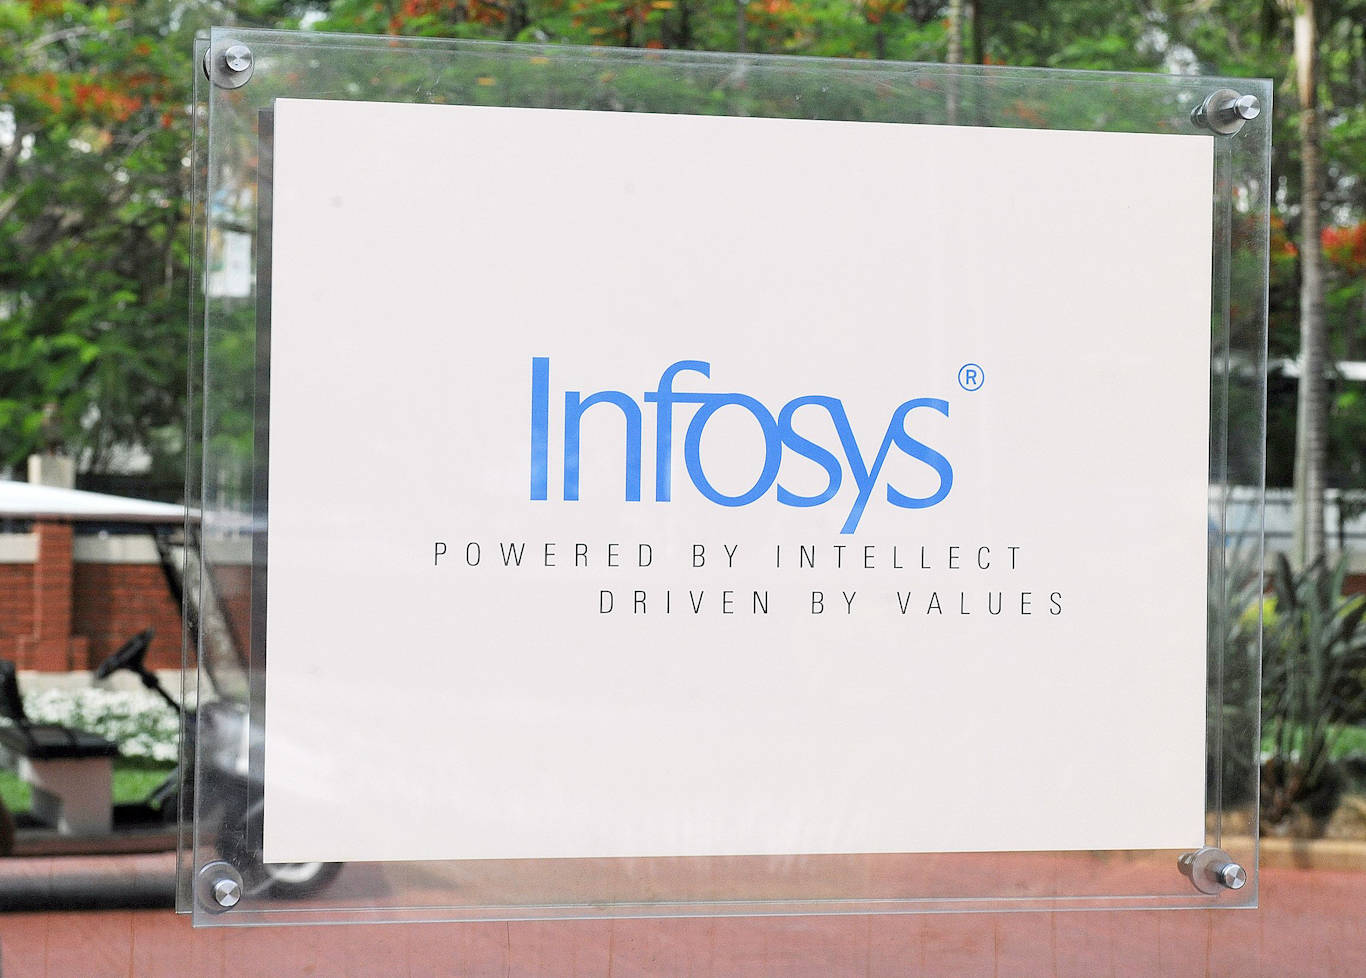 Infosys plans to hire Google-certified graduates to meet its target of 25,000 US employees by 2022 - Business Insider India